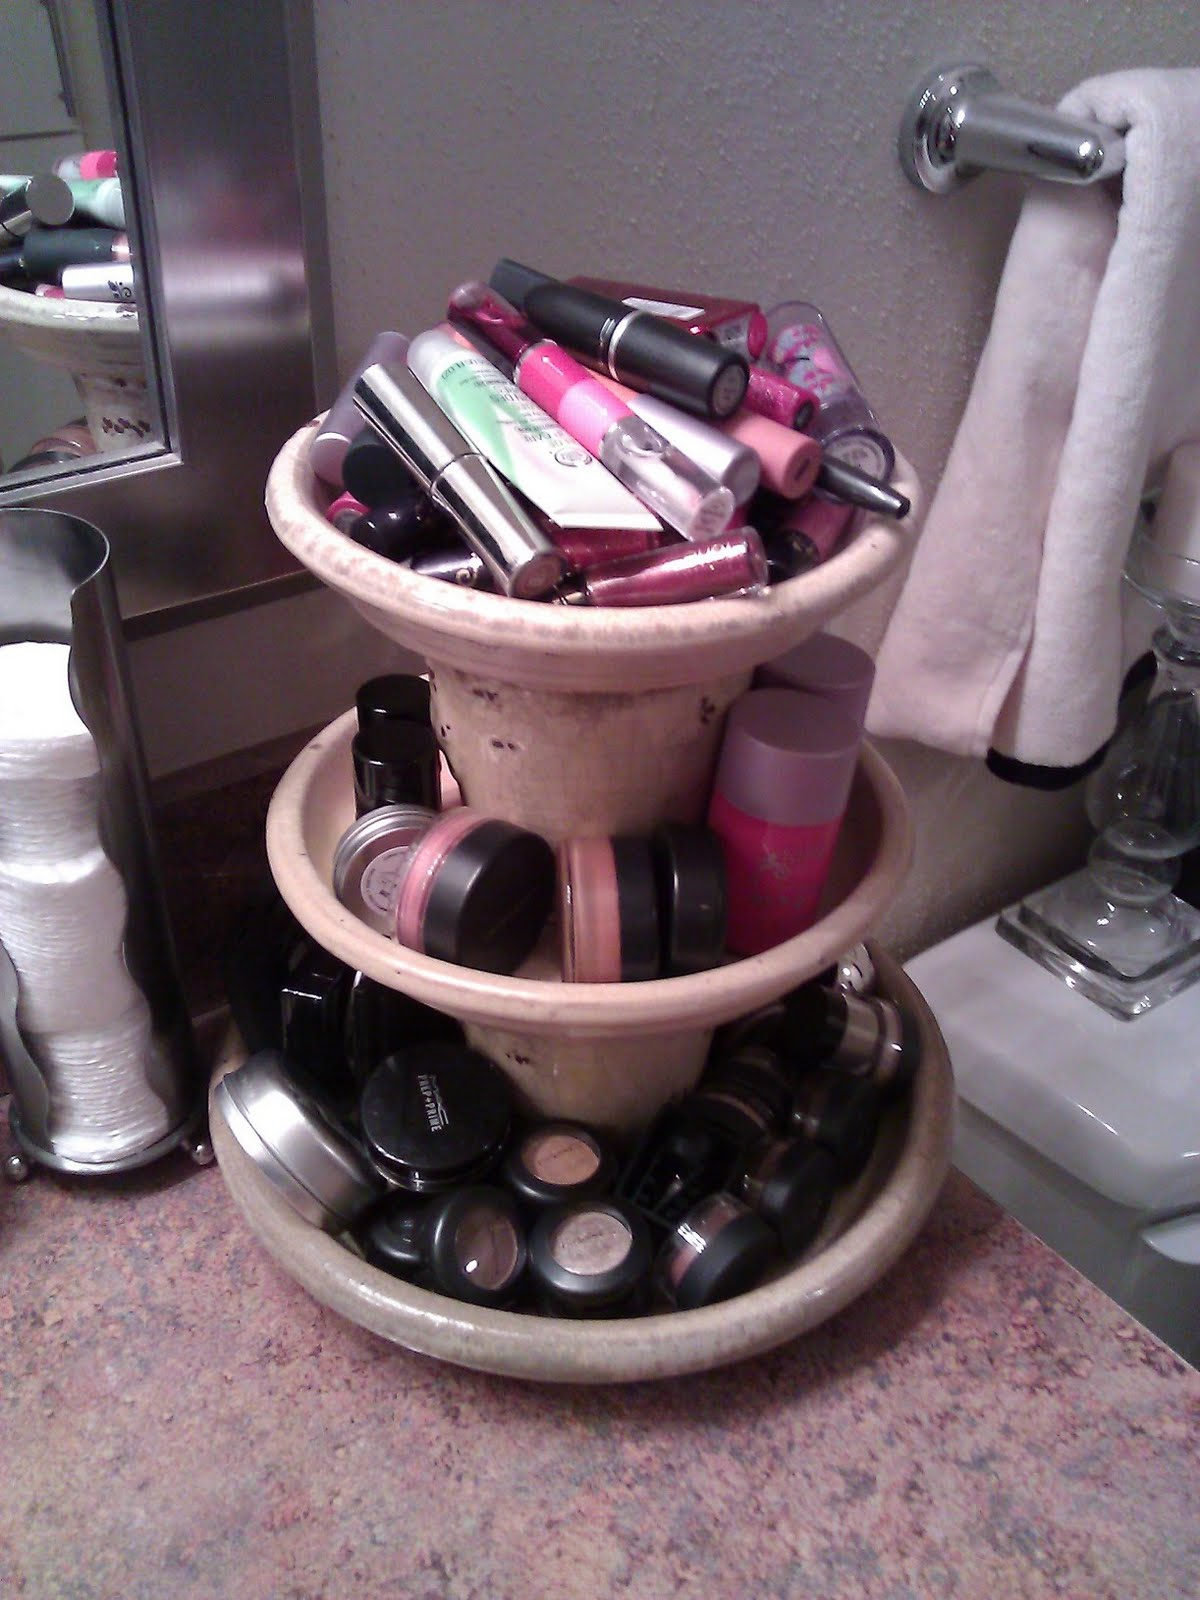 3 Planter Make-up Holder & 40 Simple DIY Makeup Organization and Storage Ideas u2013 ListInspired.com